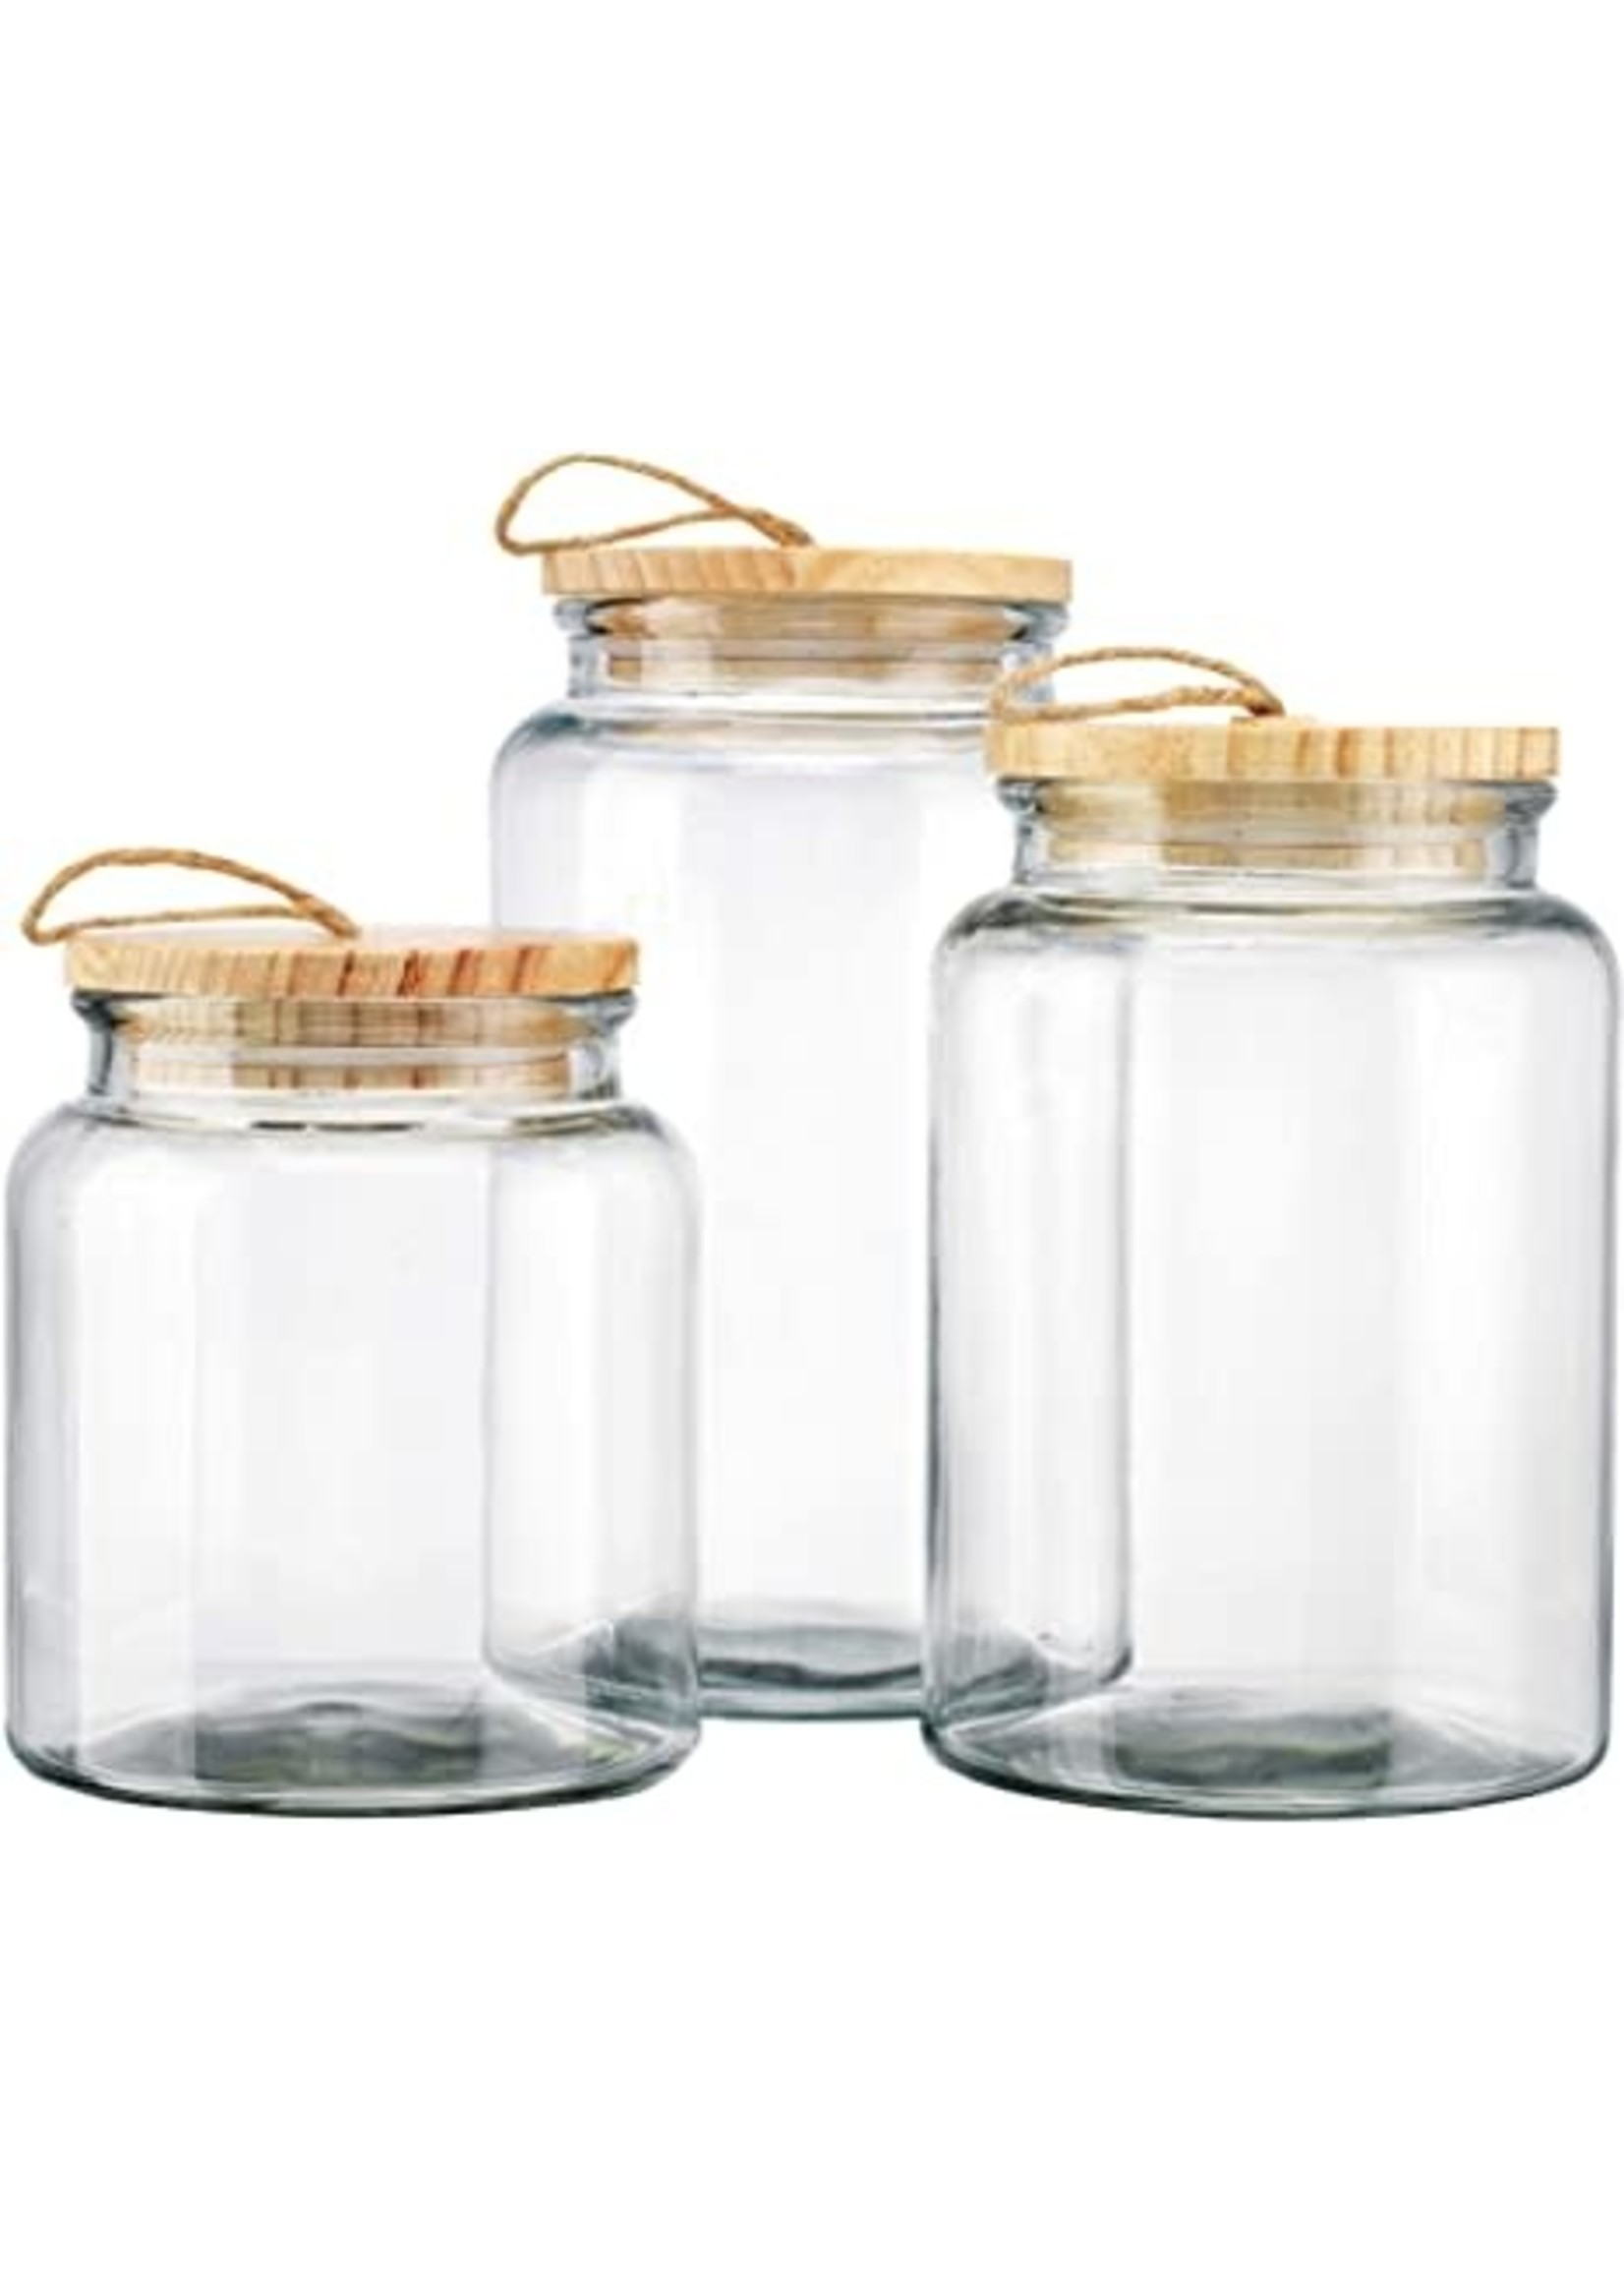 Home Essentials Glass Cannisters wood tops Set 3